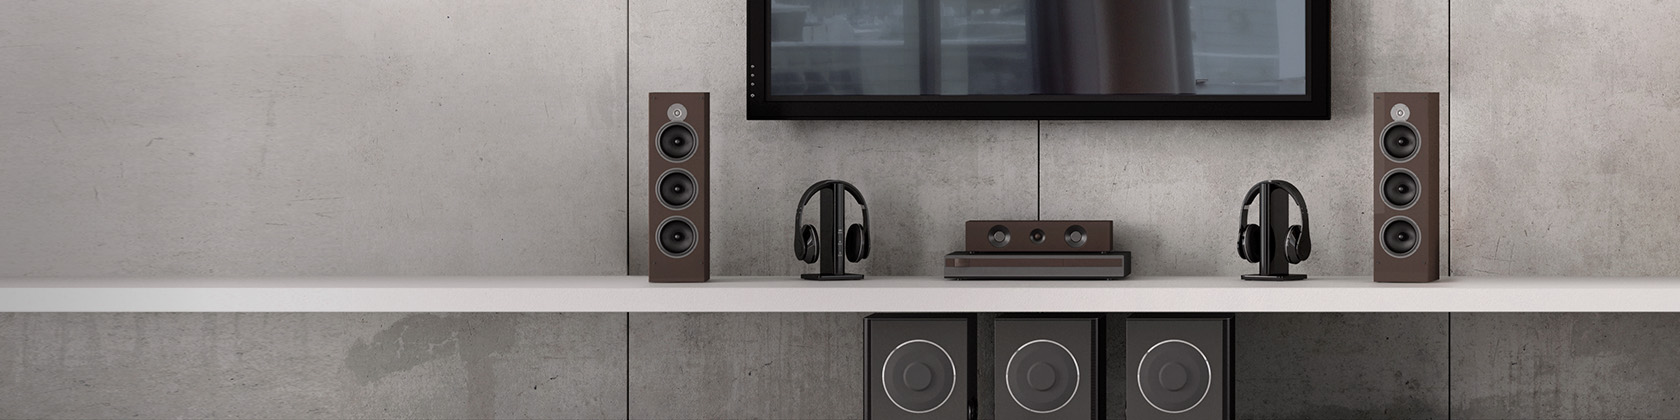 ACCESSORI PER HOME THEATER